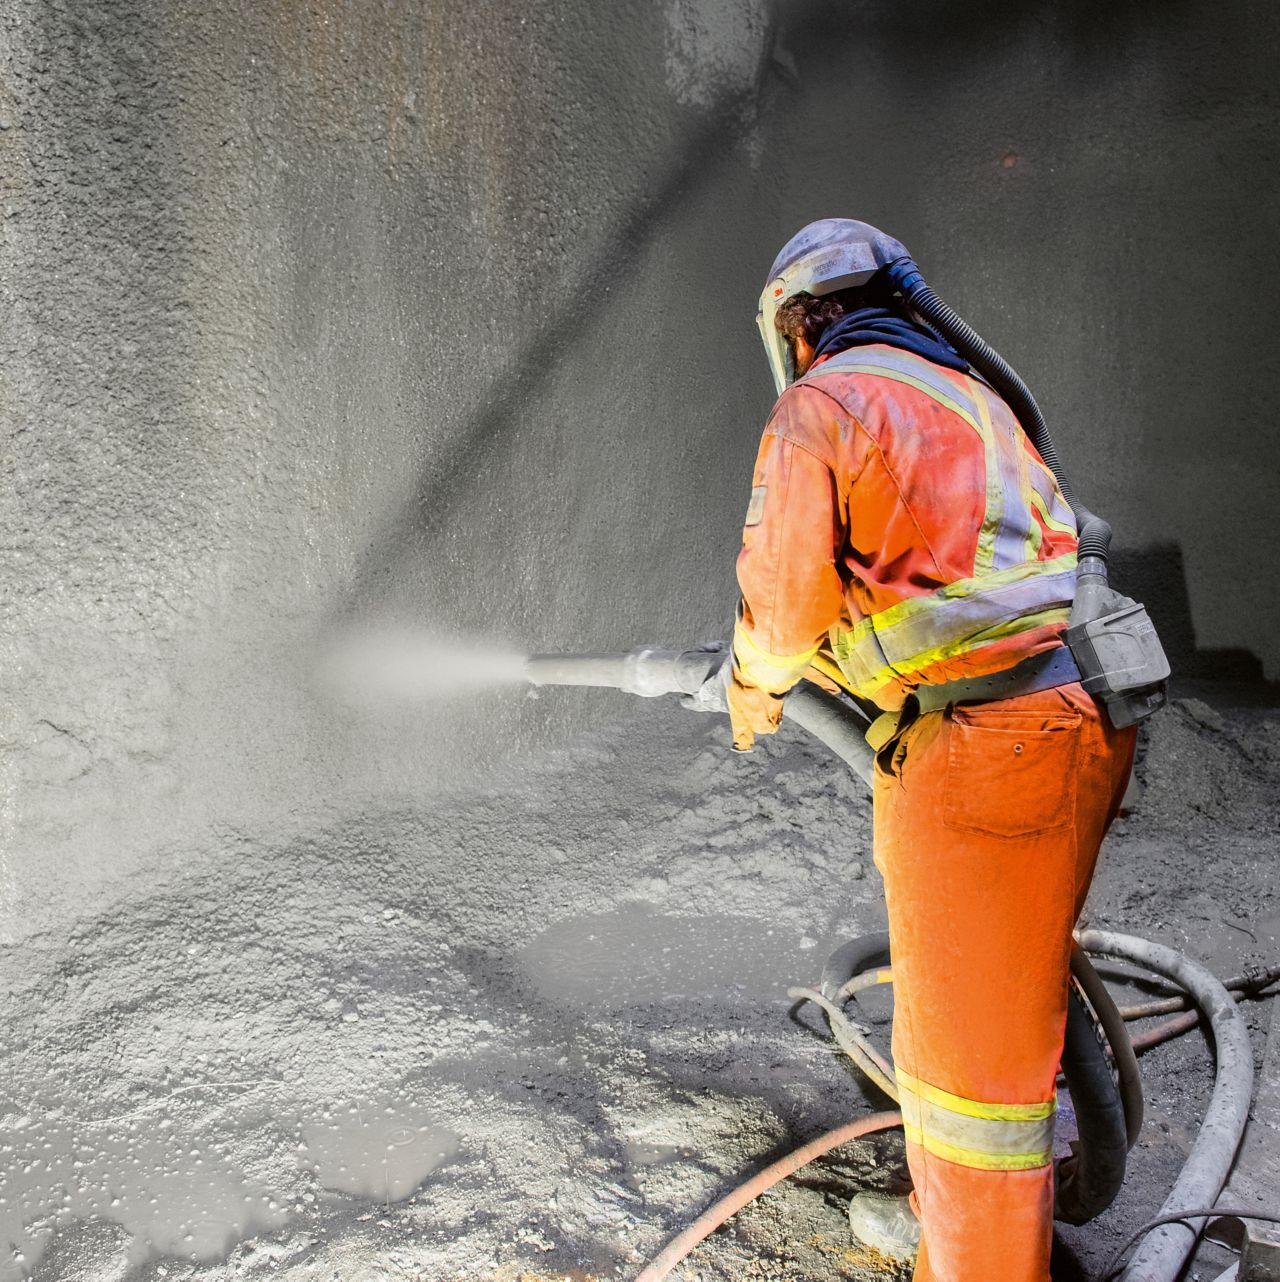 In the center of Montreal, the new light rail network is mainly built underground. Directly following excavation, the tunnel walls are secured with Sika's shotcrete.